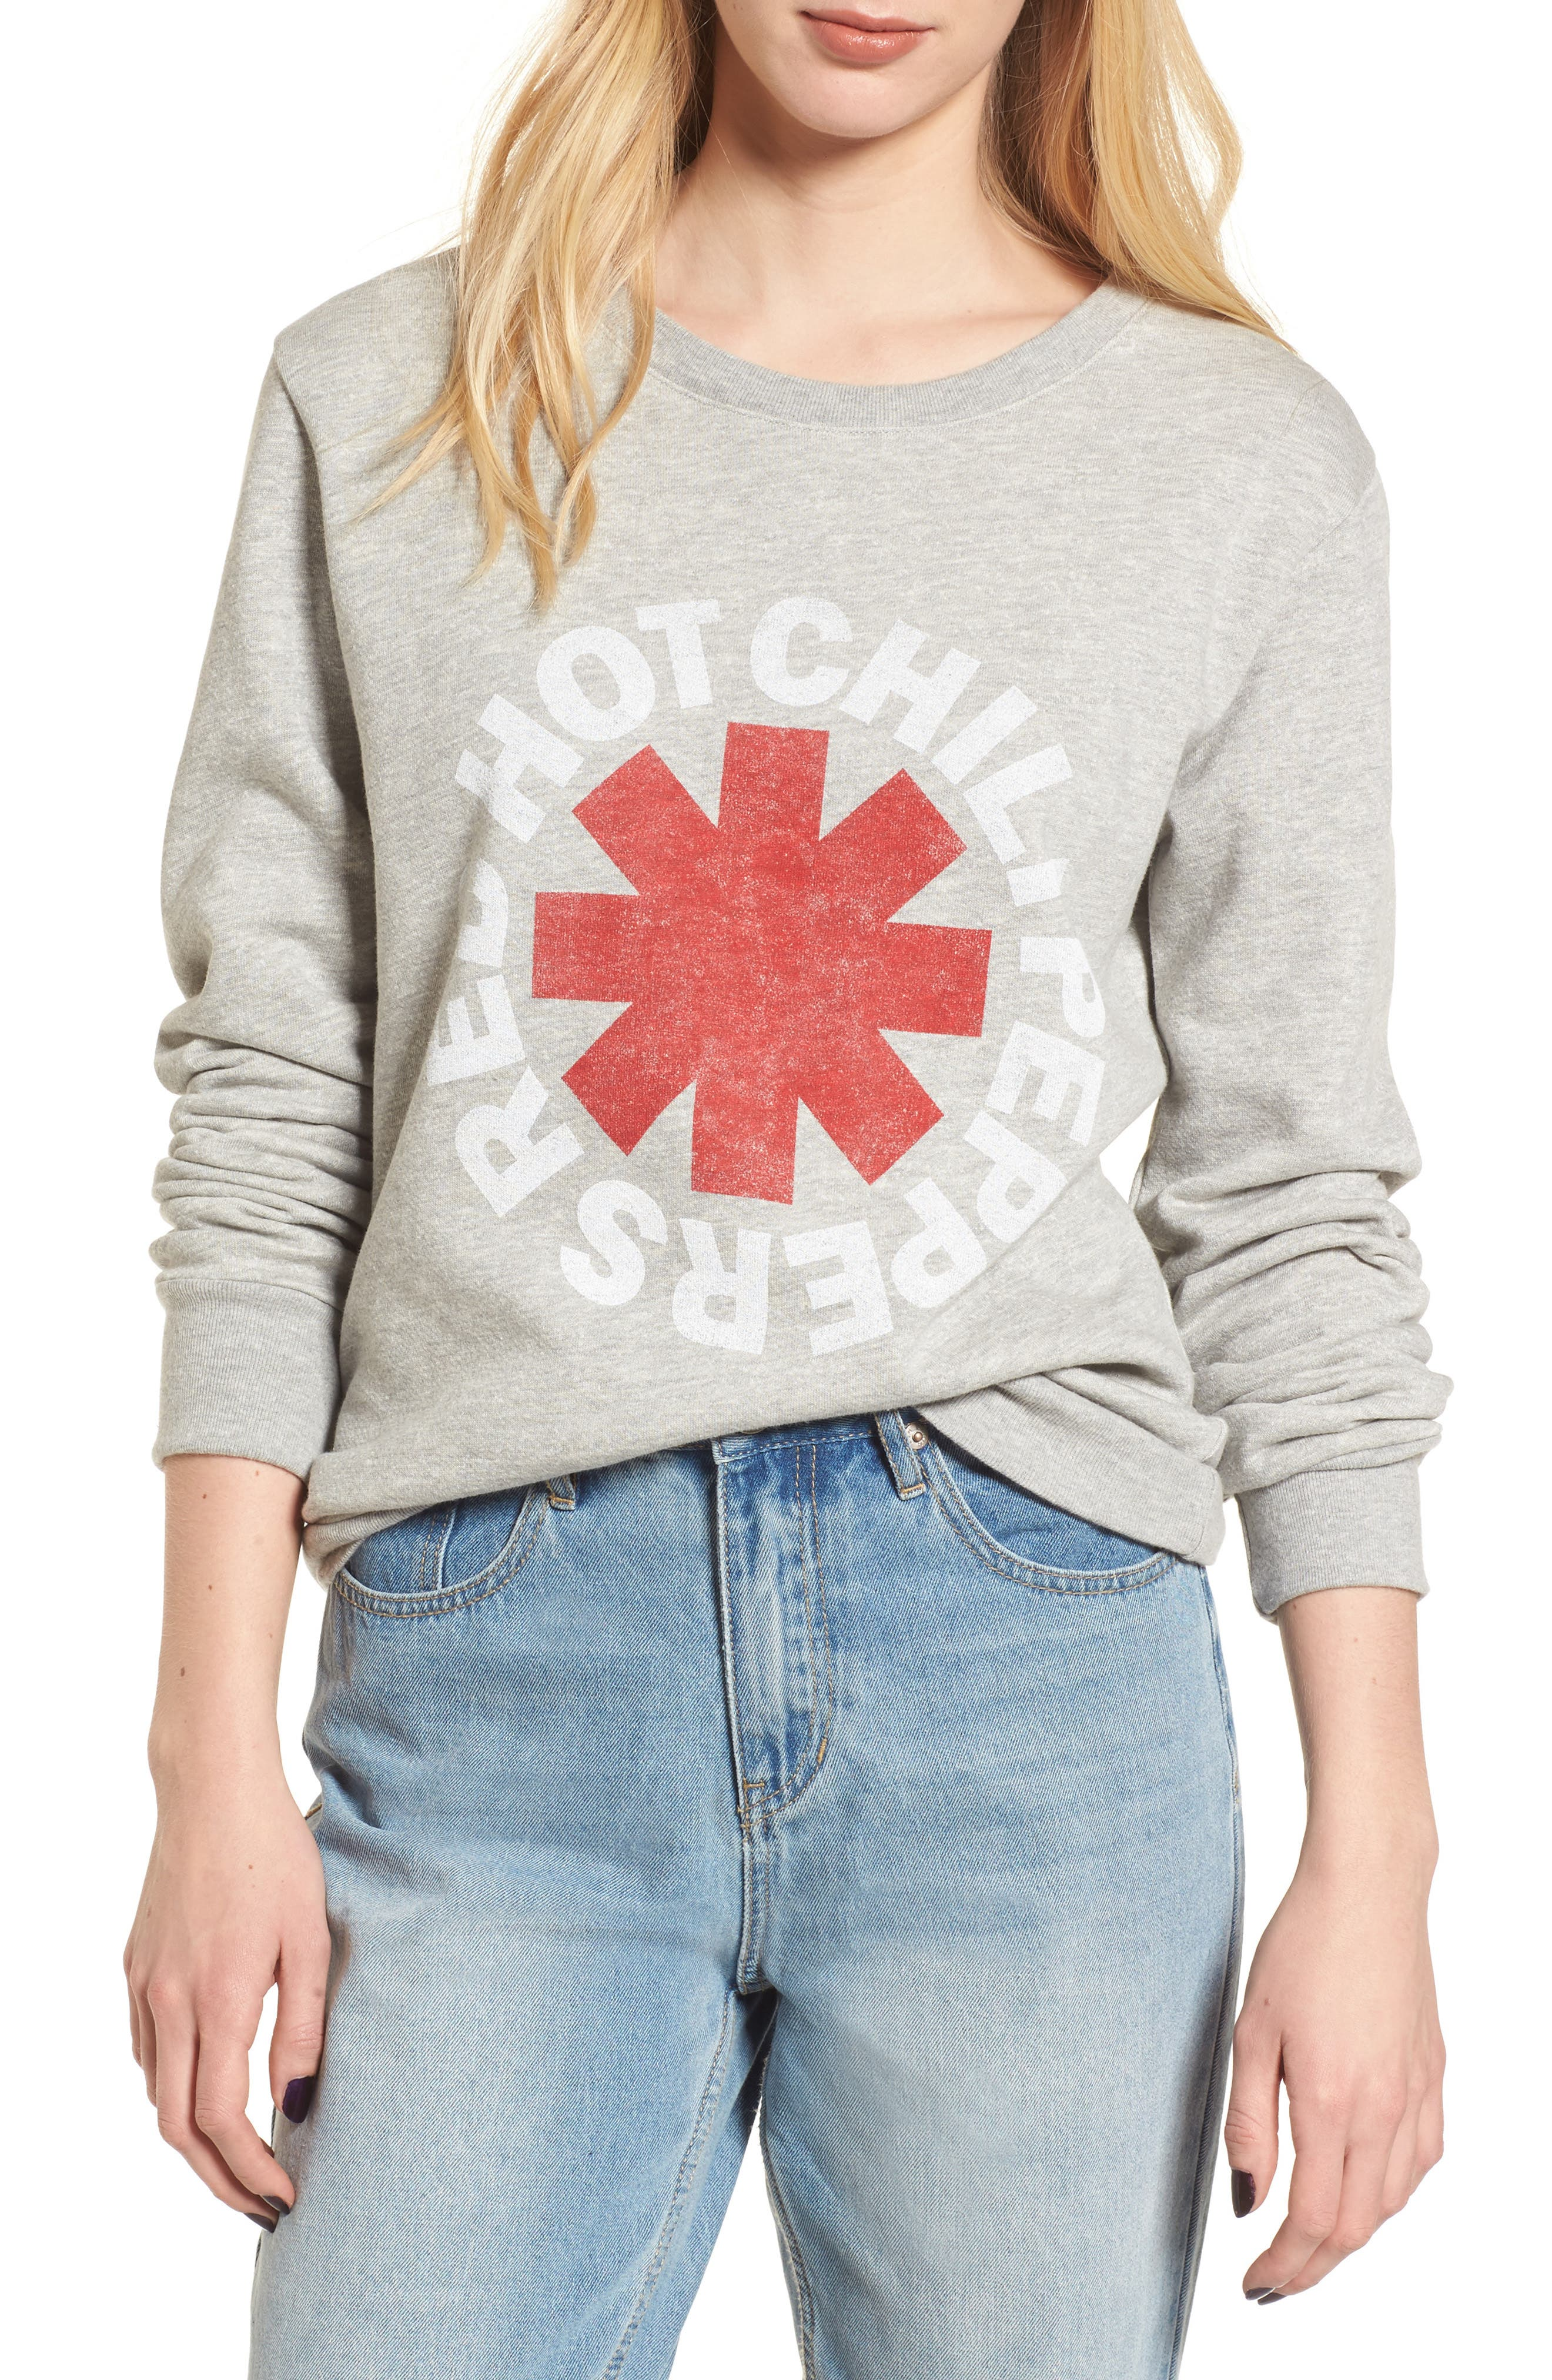 Red Hot Chili Peppers Sweatshirt,                             Main thumbnail 1, color,                             Heather Grey